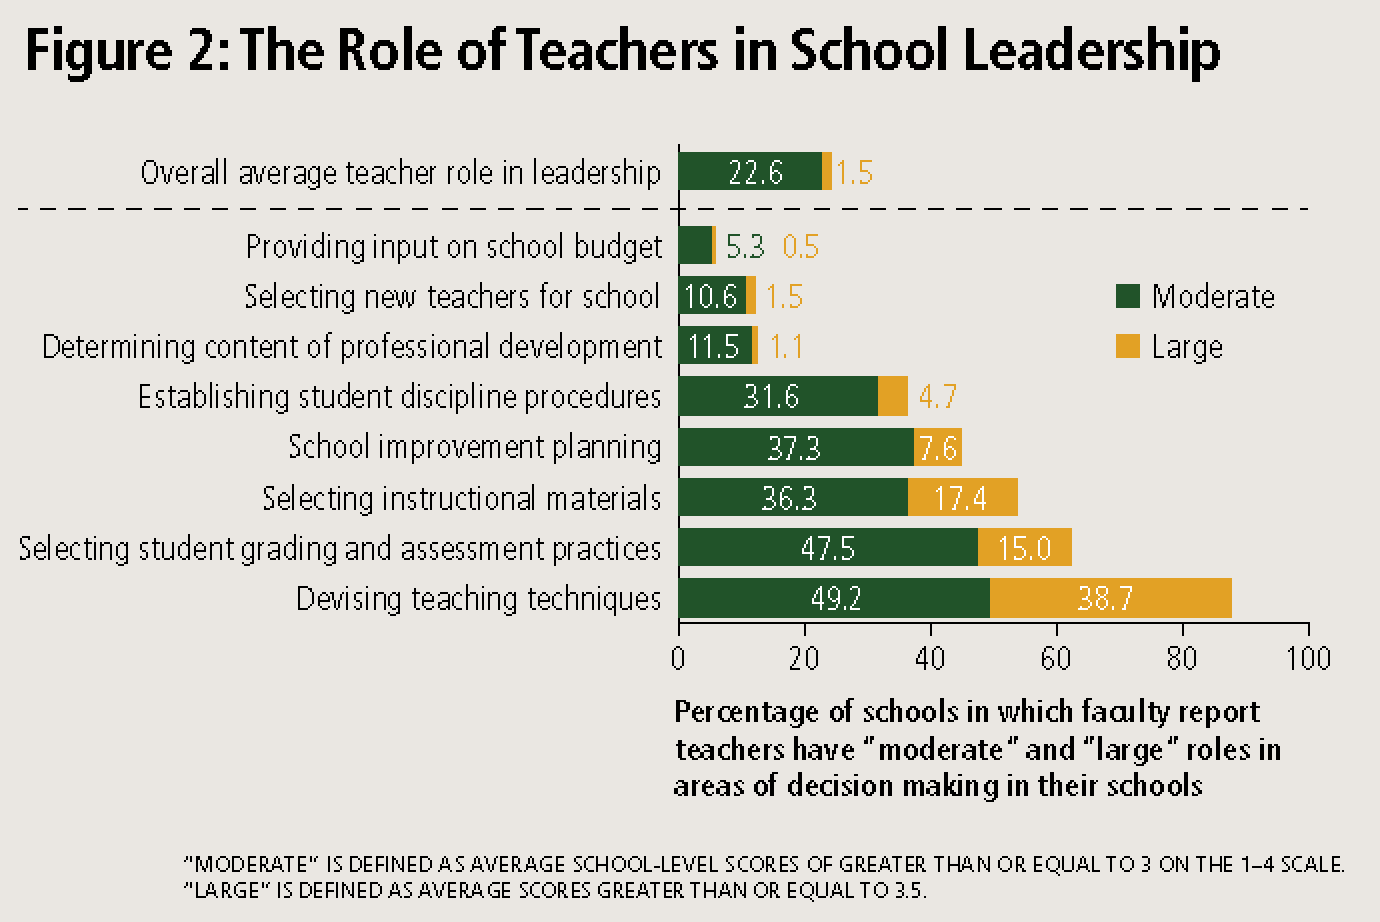 Figure 2: The Role of Teachers in School Leadership